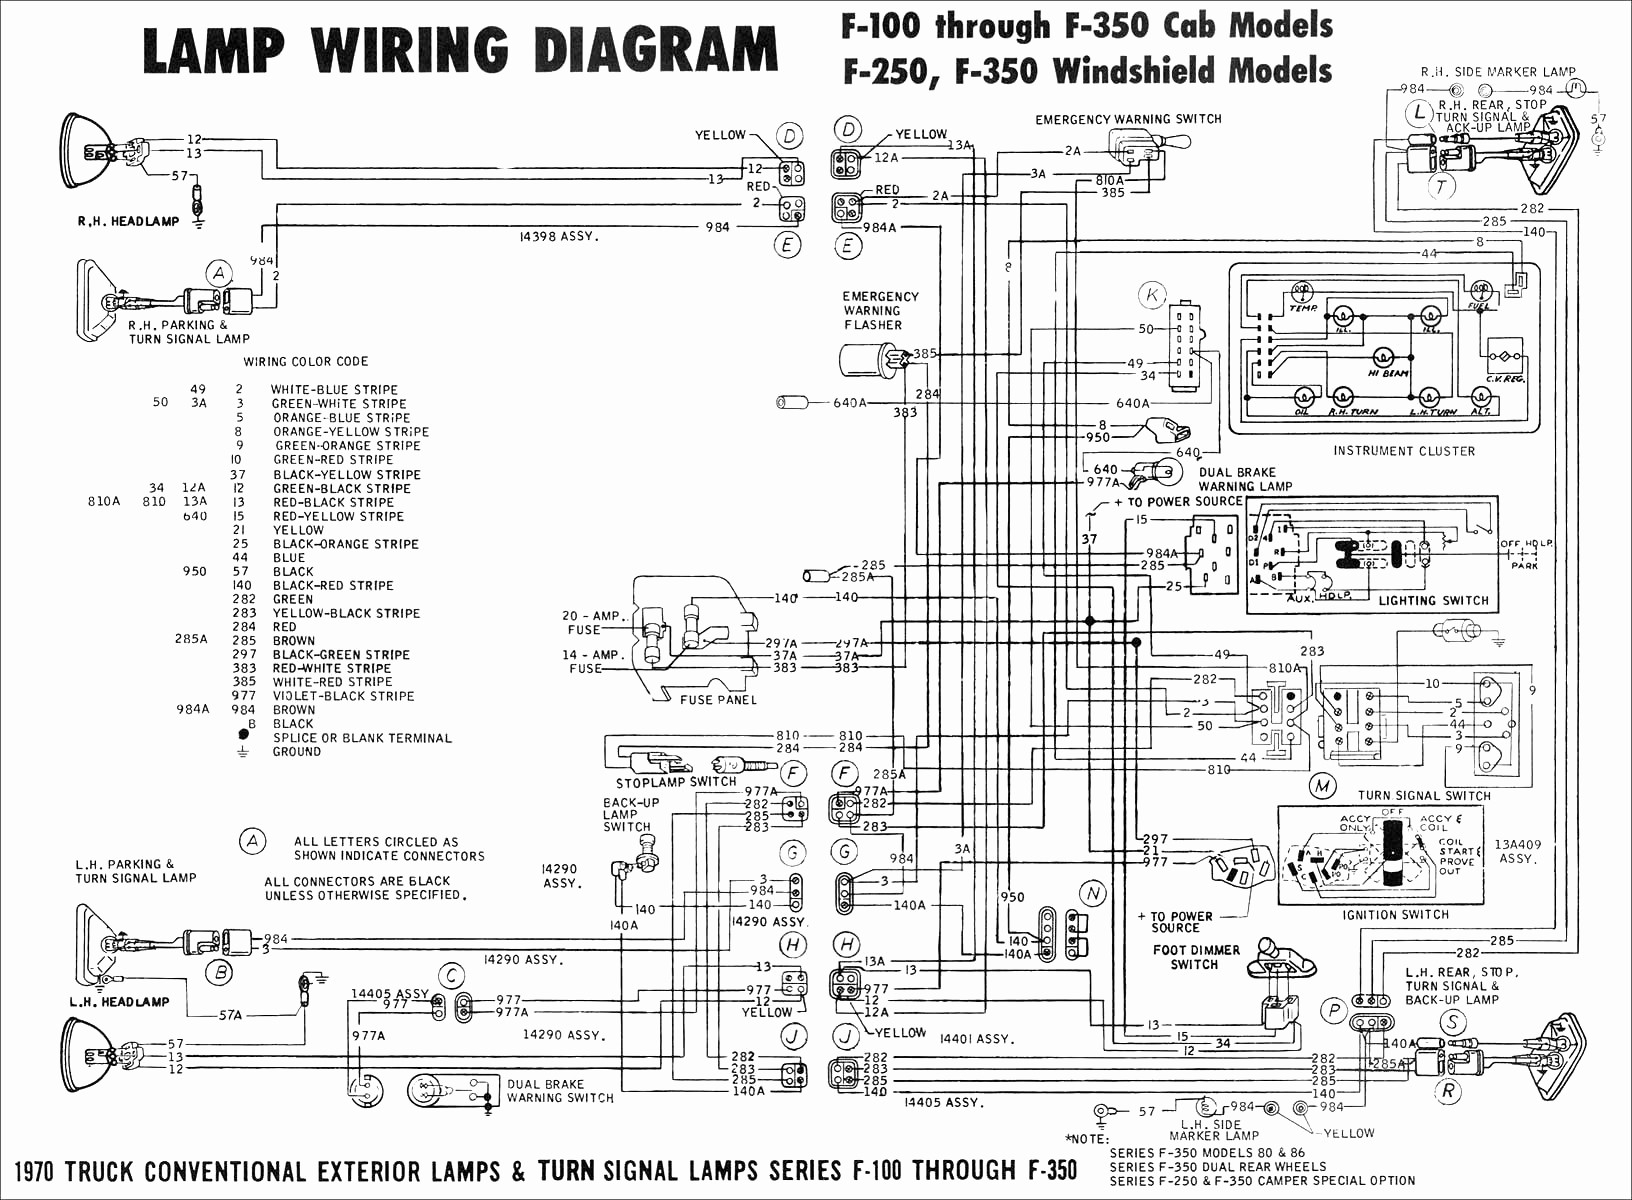 true tuc 27f wiring diagram Download-True Tuc 27f Wiring Diagram New Wiring Diagram True Freezer T 49f Wiring Diagram New Free Wiring 18-f